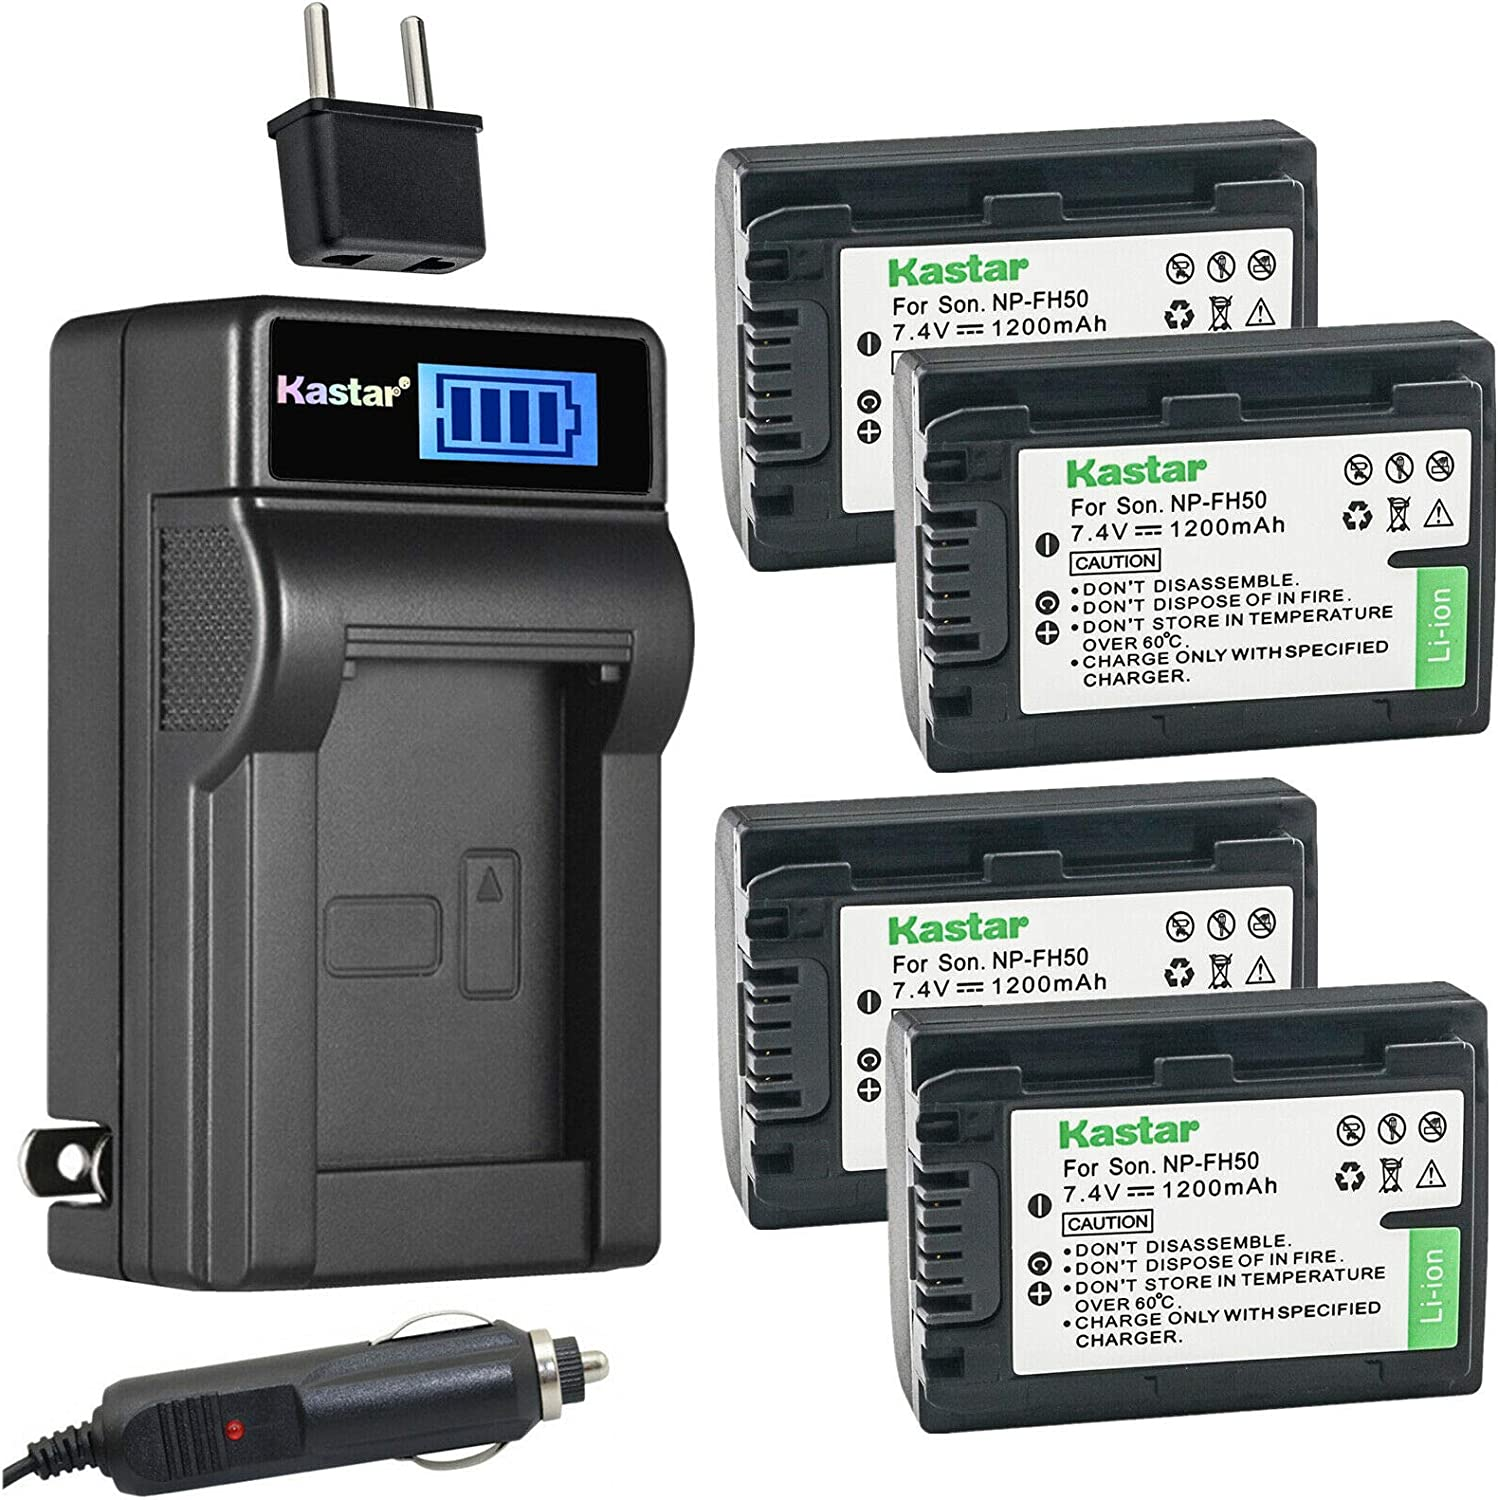 Kastar 4-Pack NP-FH50 Battery and Charger AC In a 2021 popularity with LCD Compatible